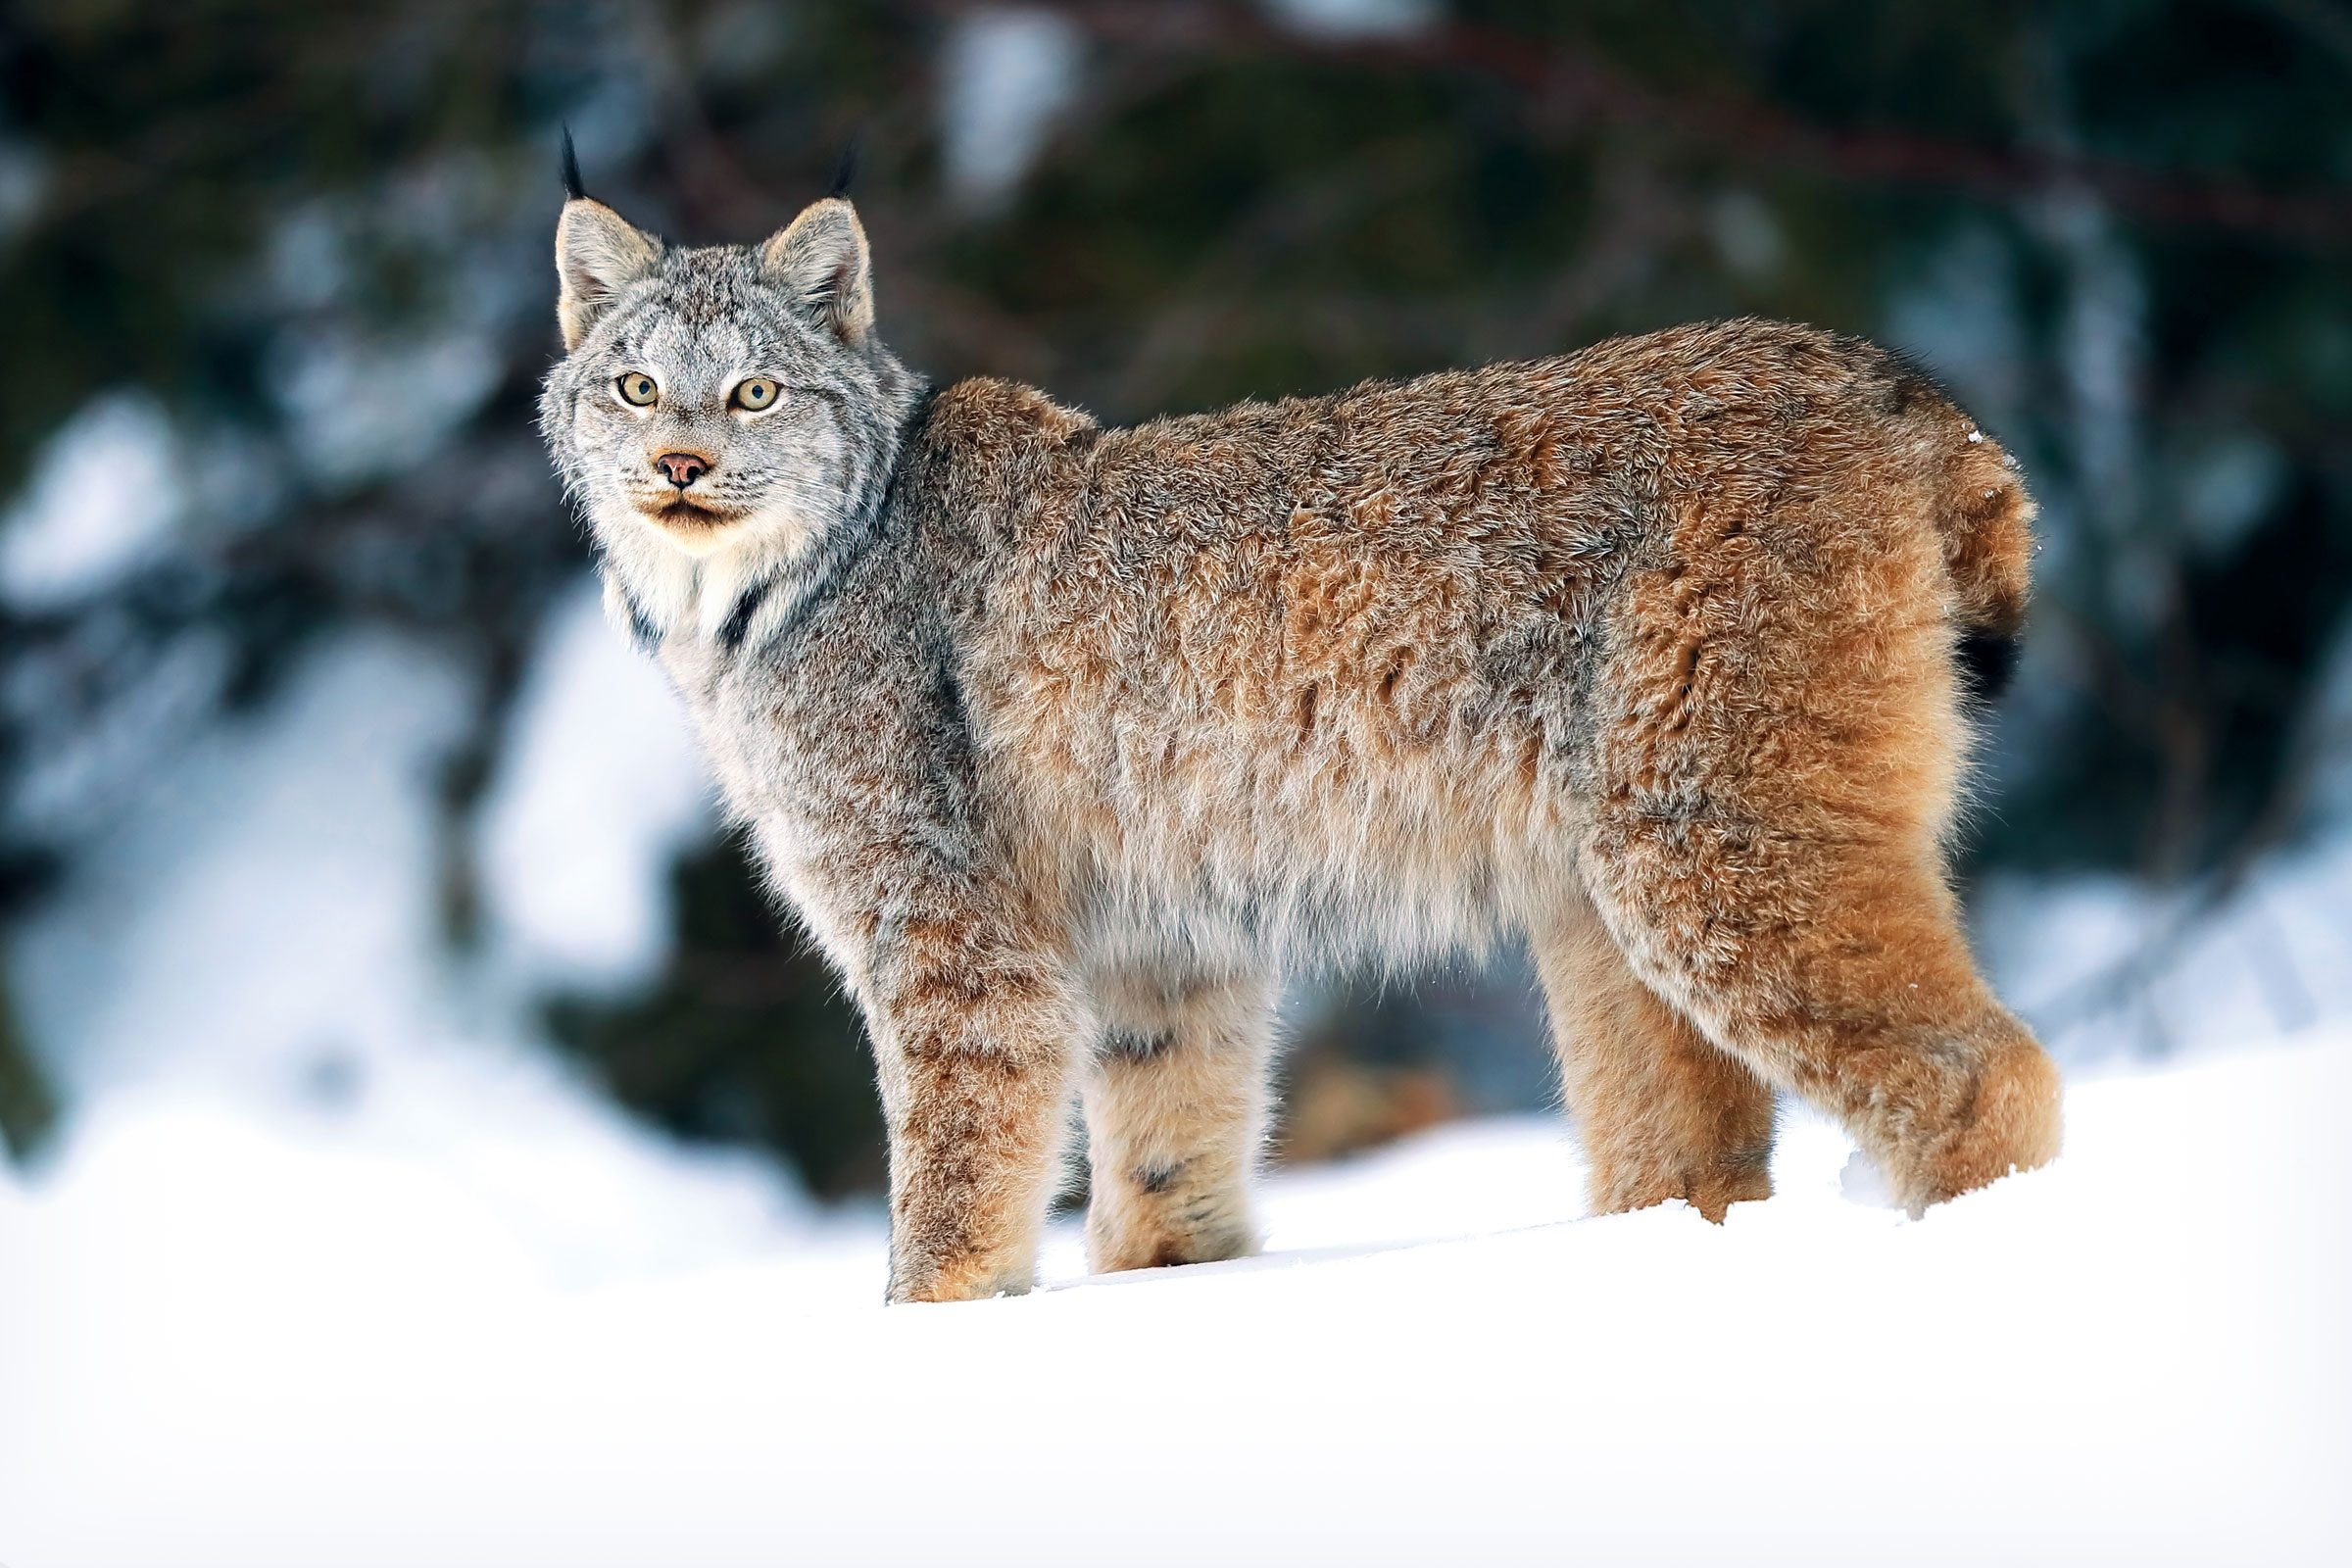 a Canada lynx standing in a snowy landscape looks directly into the camera